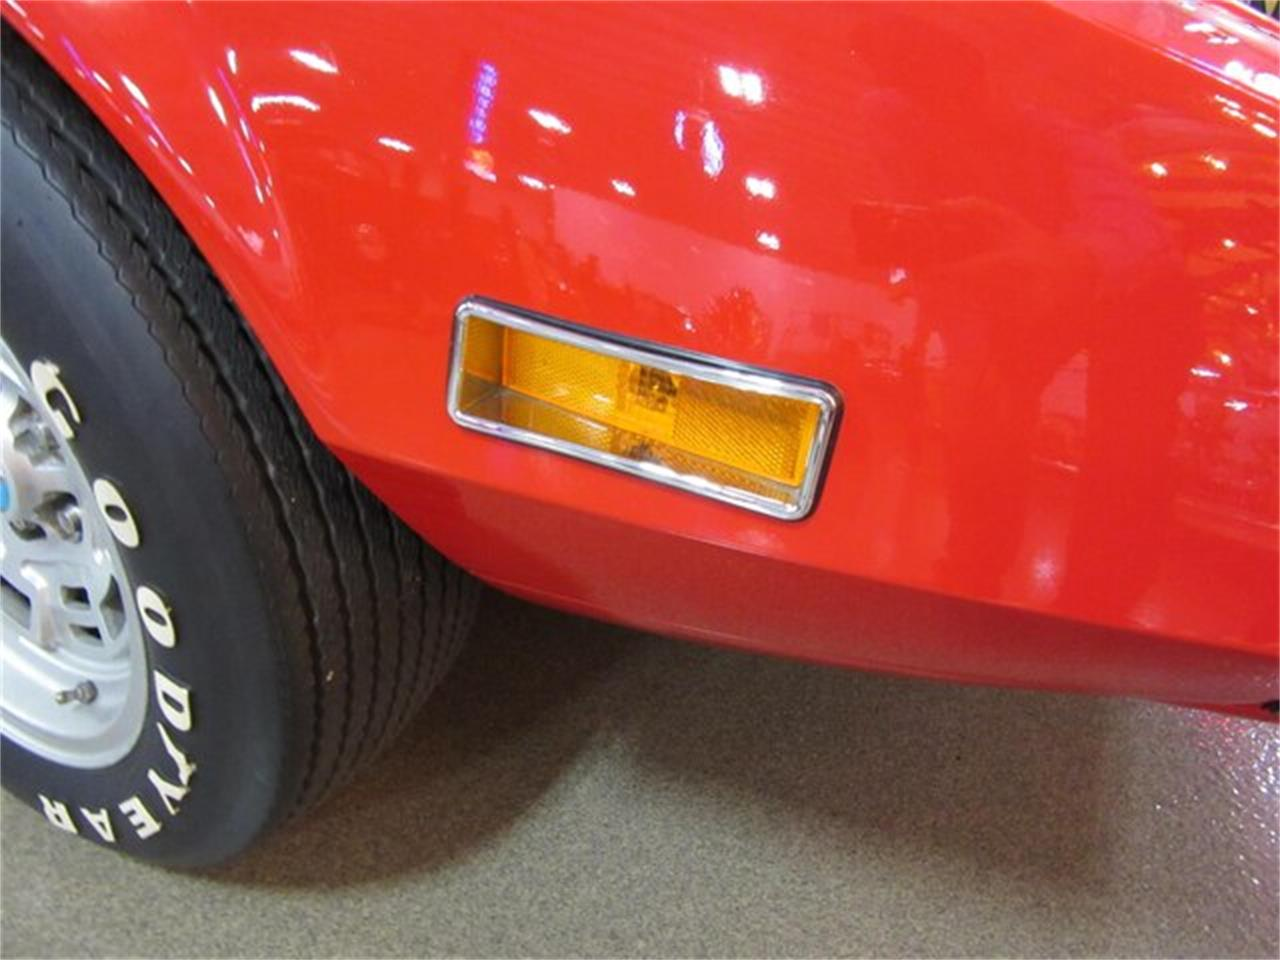 1974 De Tomaso Pantera (CC-1183952) for sale in Greenwood, Indiana